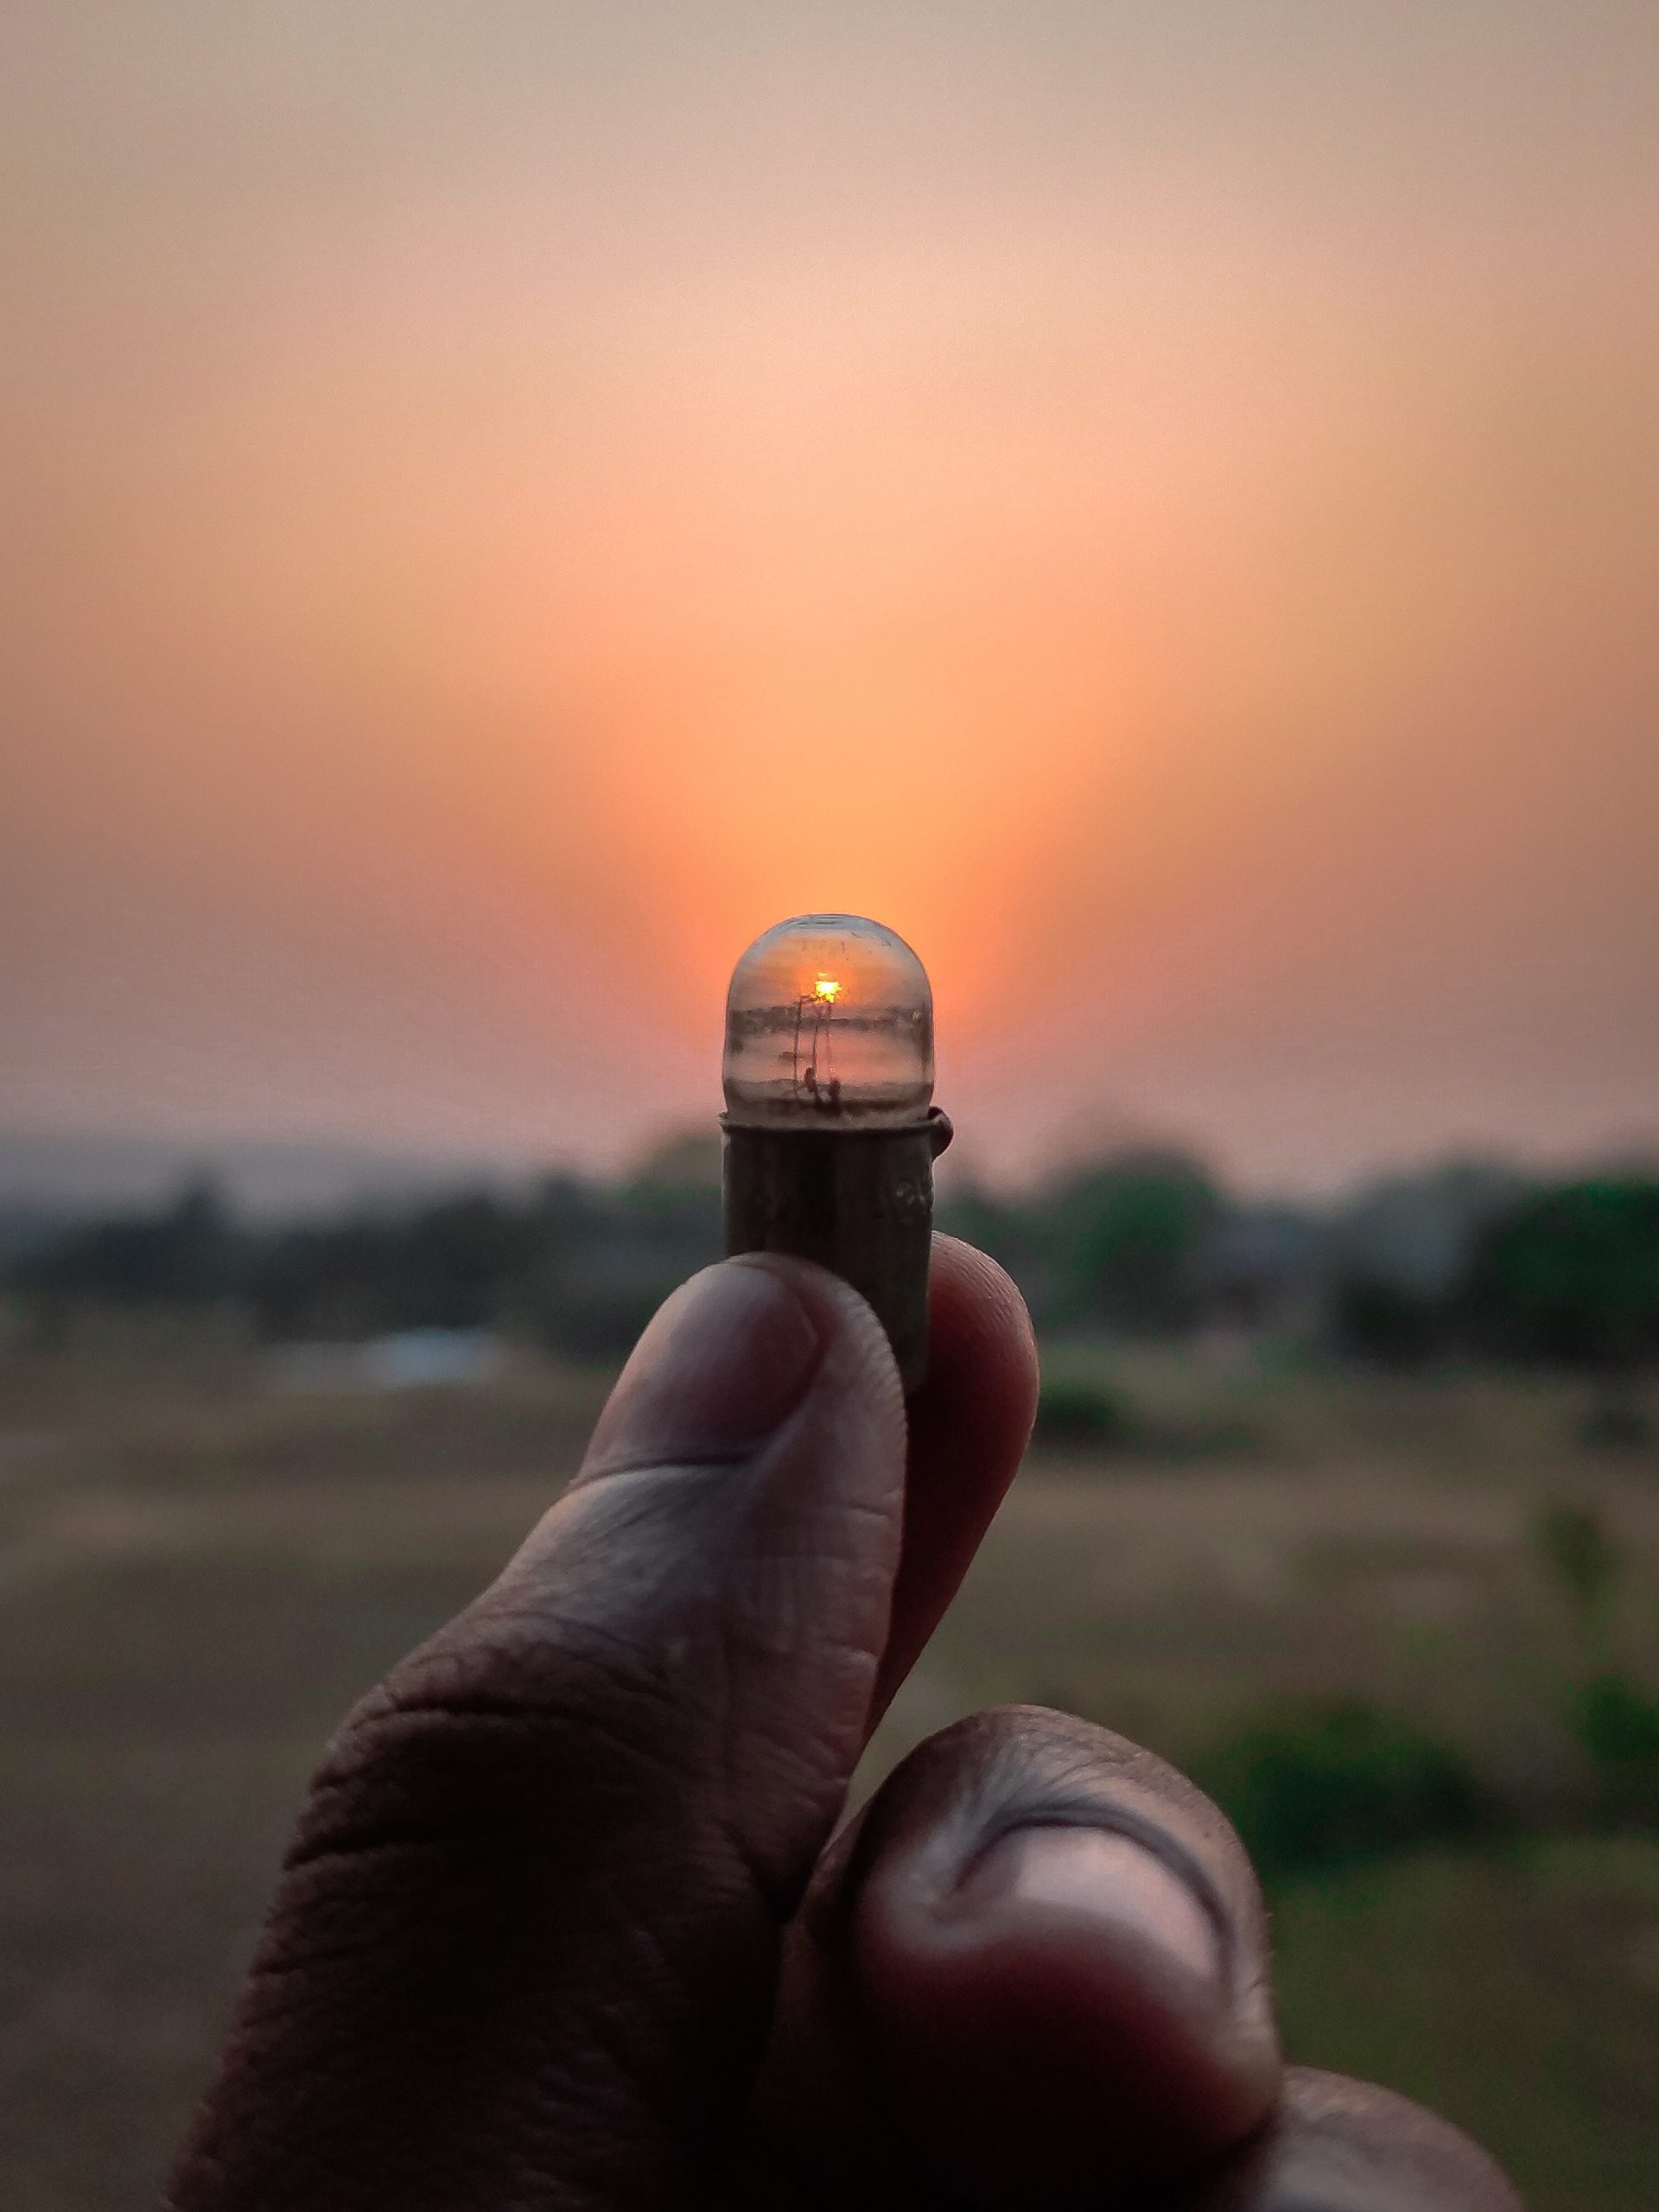 A LED bulb in hand